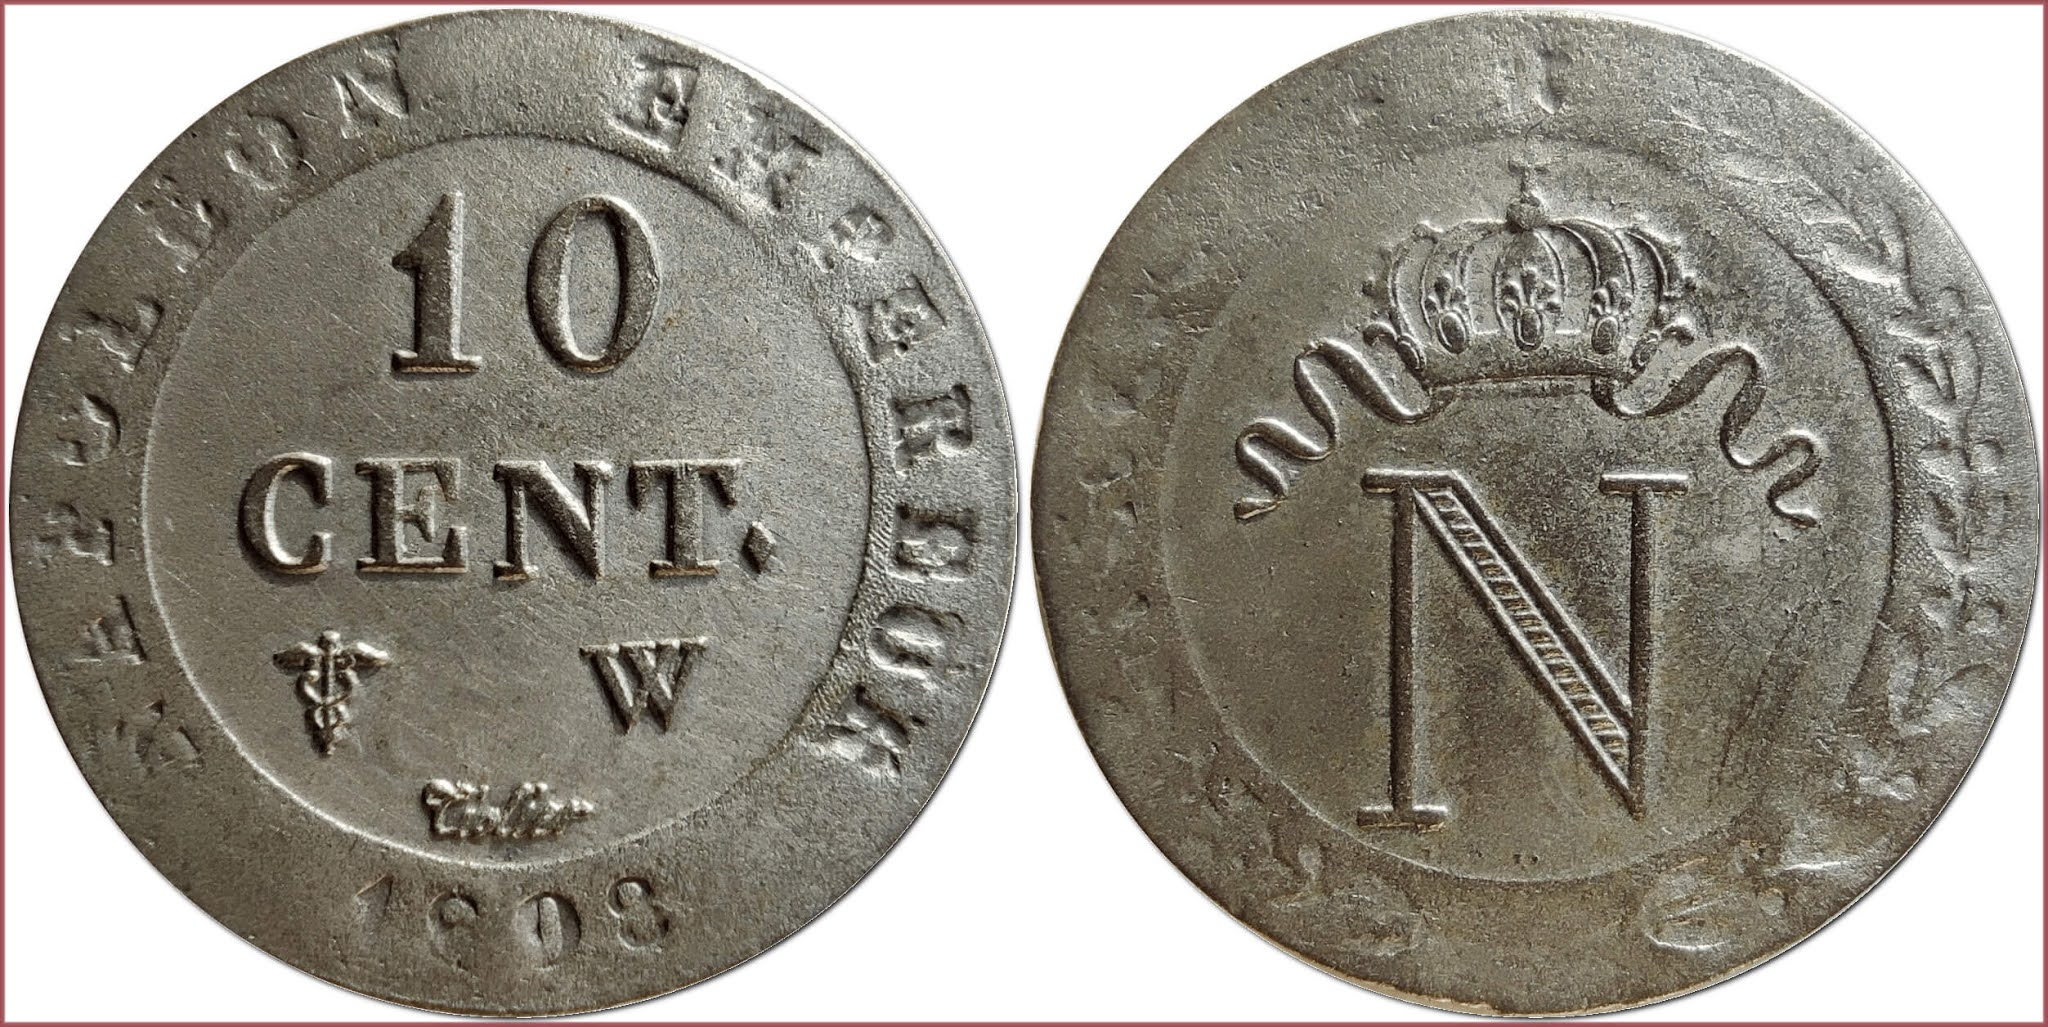 10 centimes, 1808: French Empire